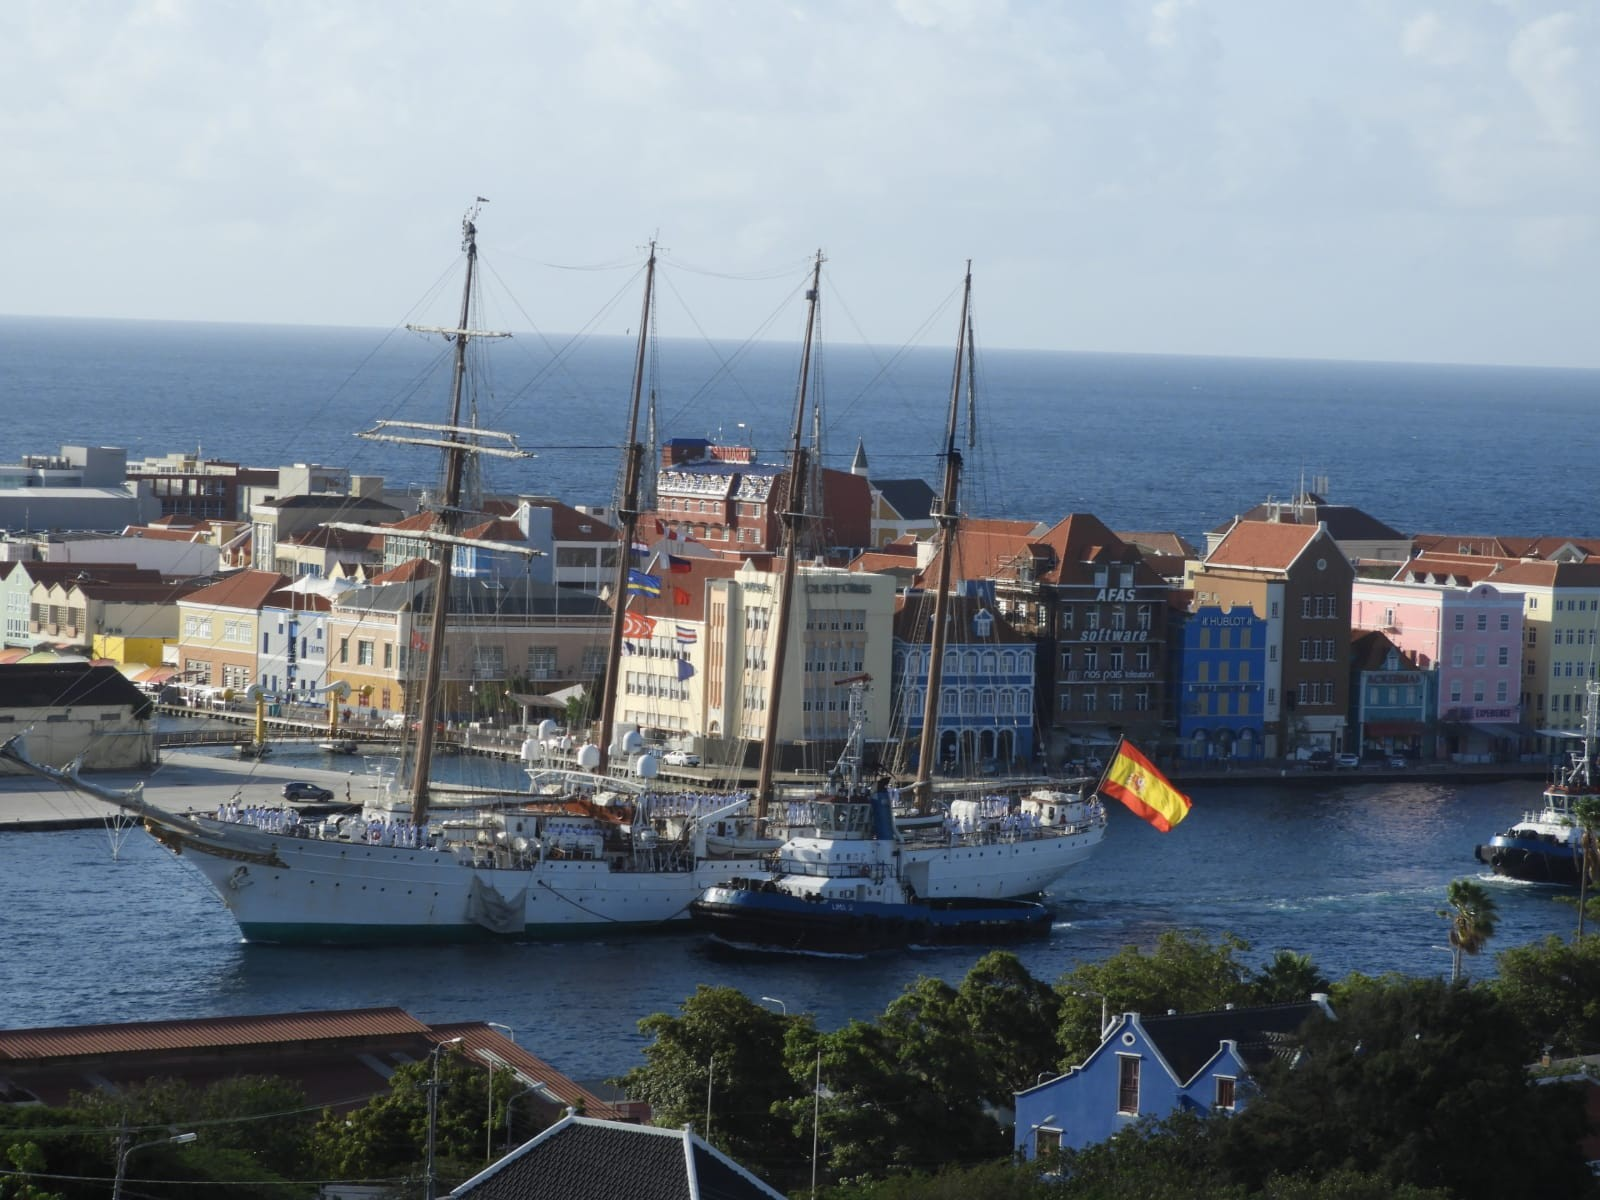 Port call of Spanish Navy training ship 'Juan Sebastián de Elcano' in Curaçao.